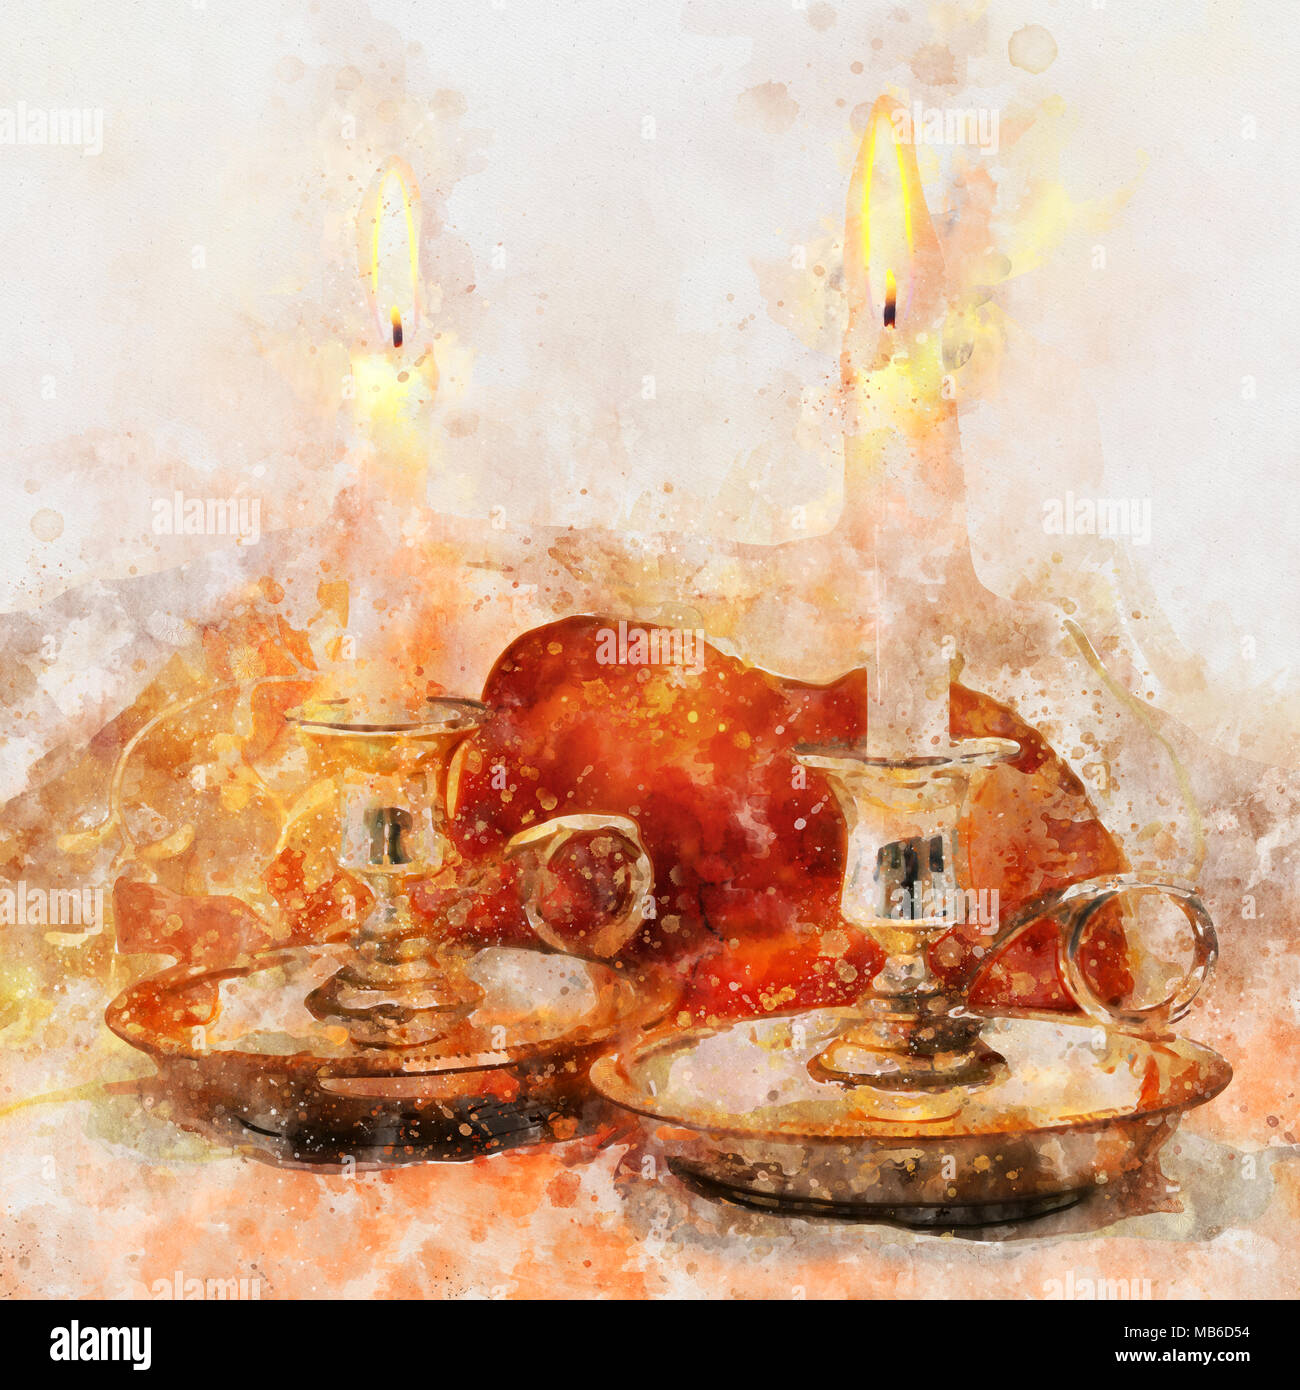 watercolor style and abstract image of shabbat. challah bread and candles on the table - Stock Image